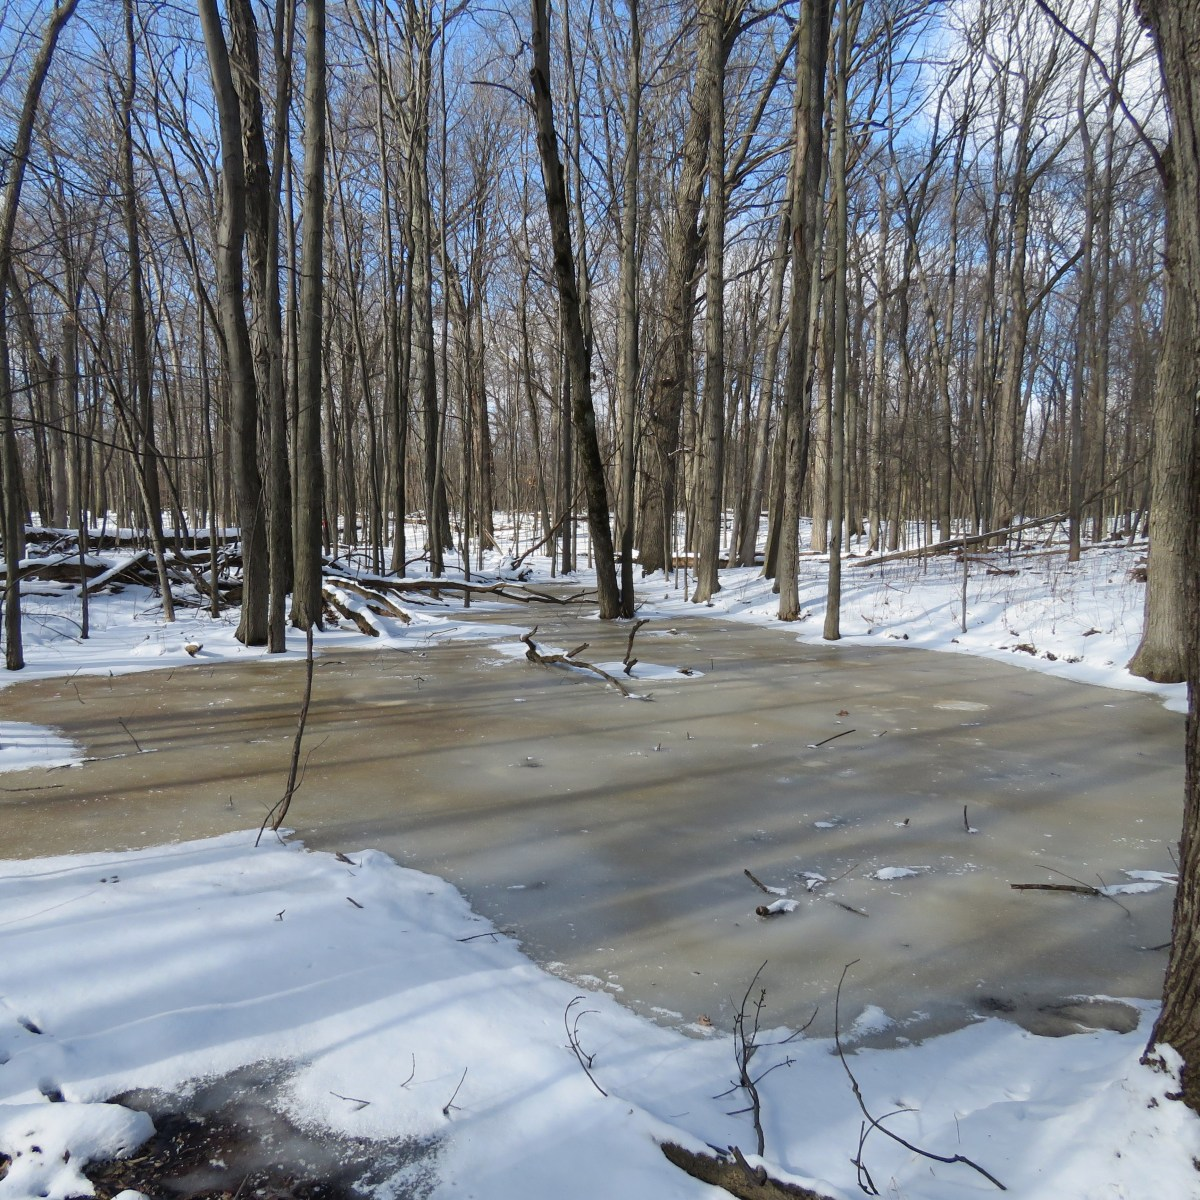 A frozen vernal pond in the winter